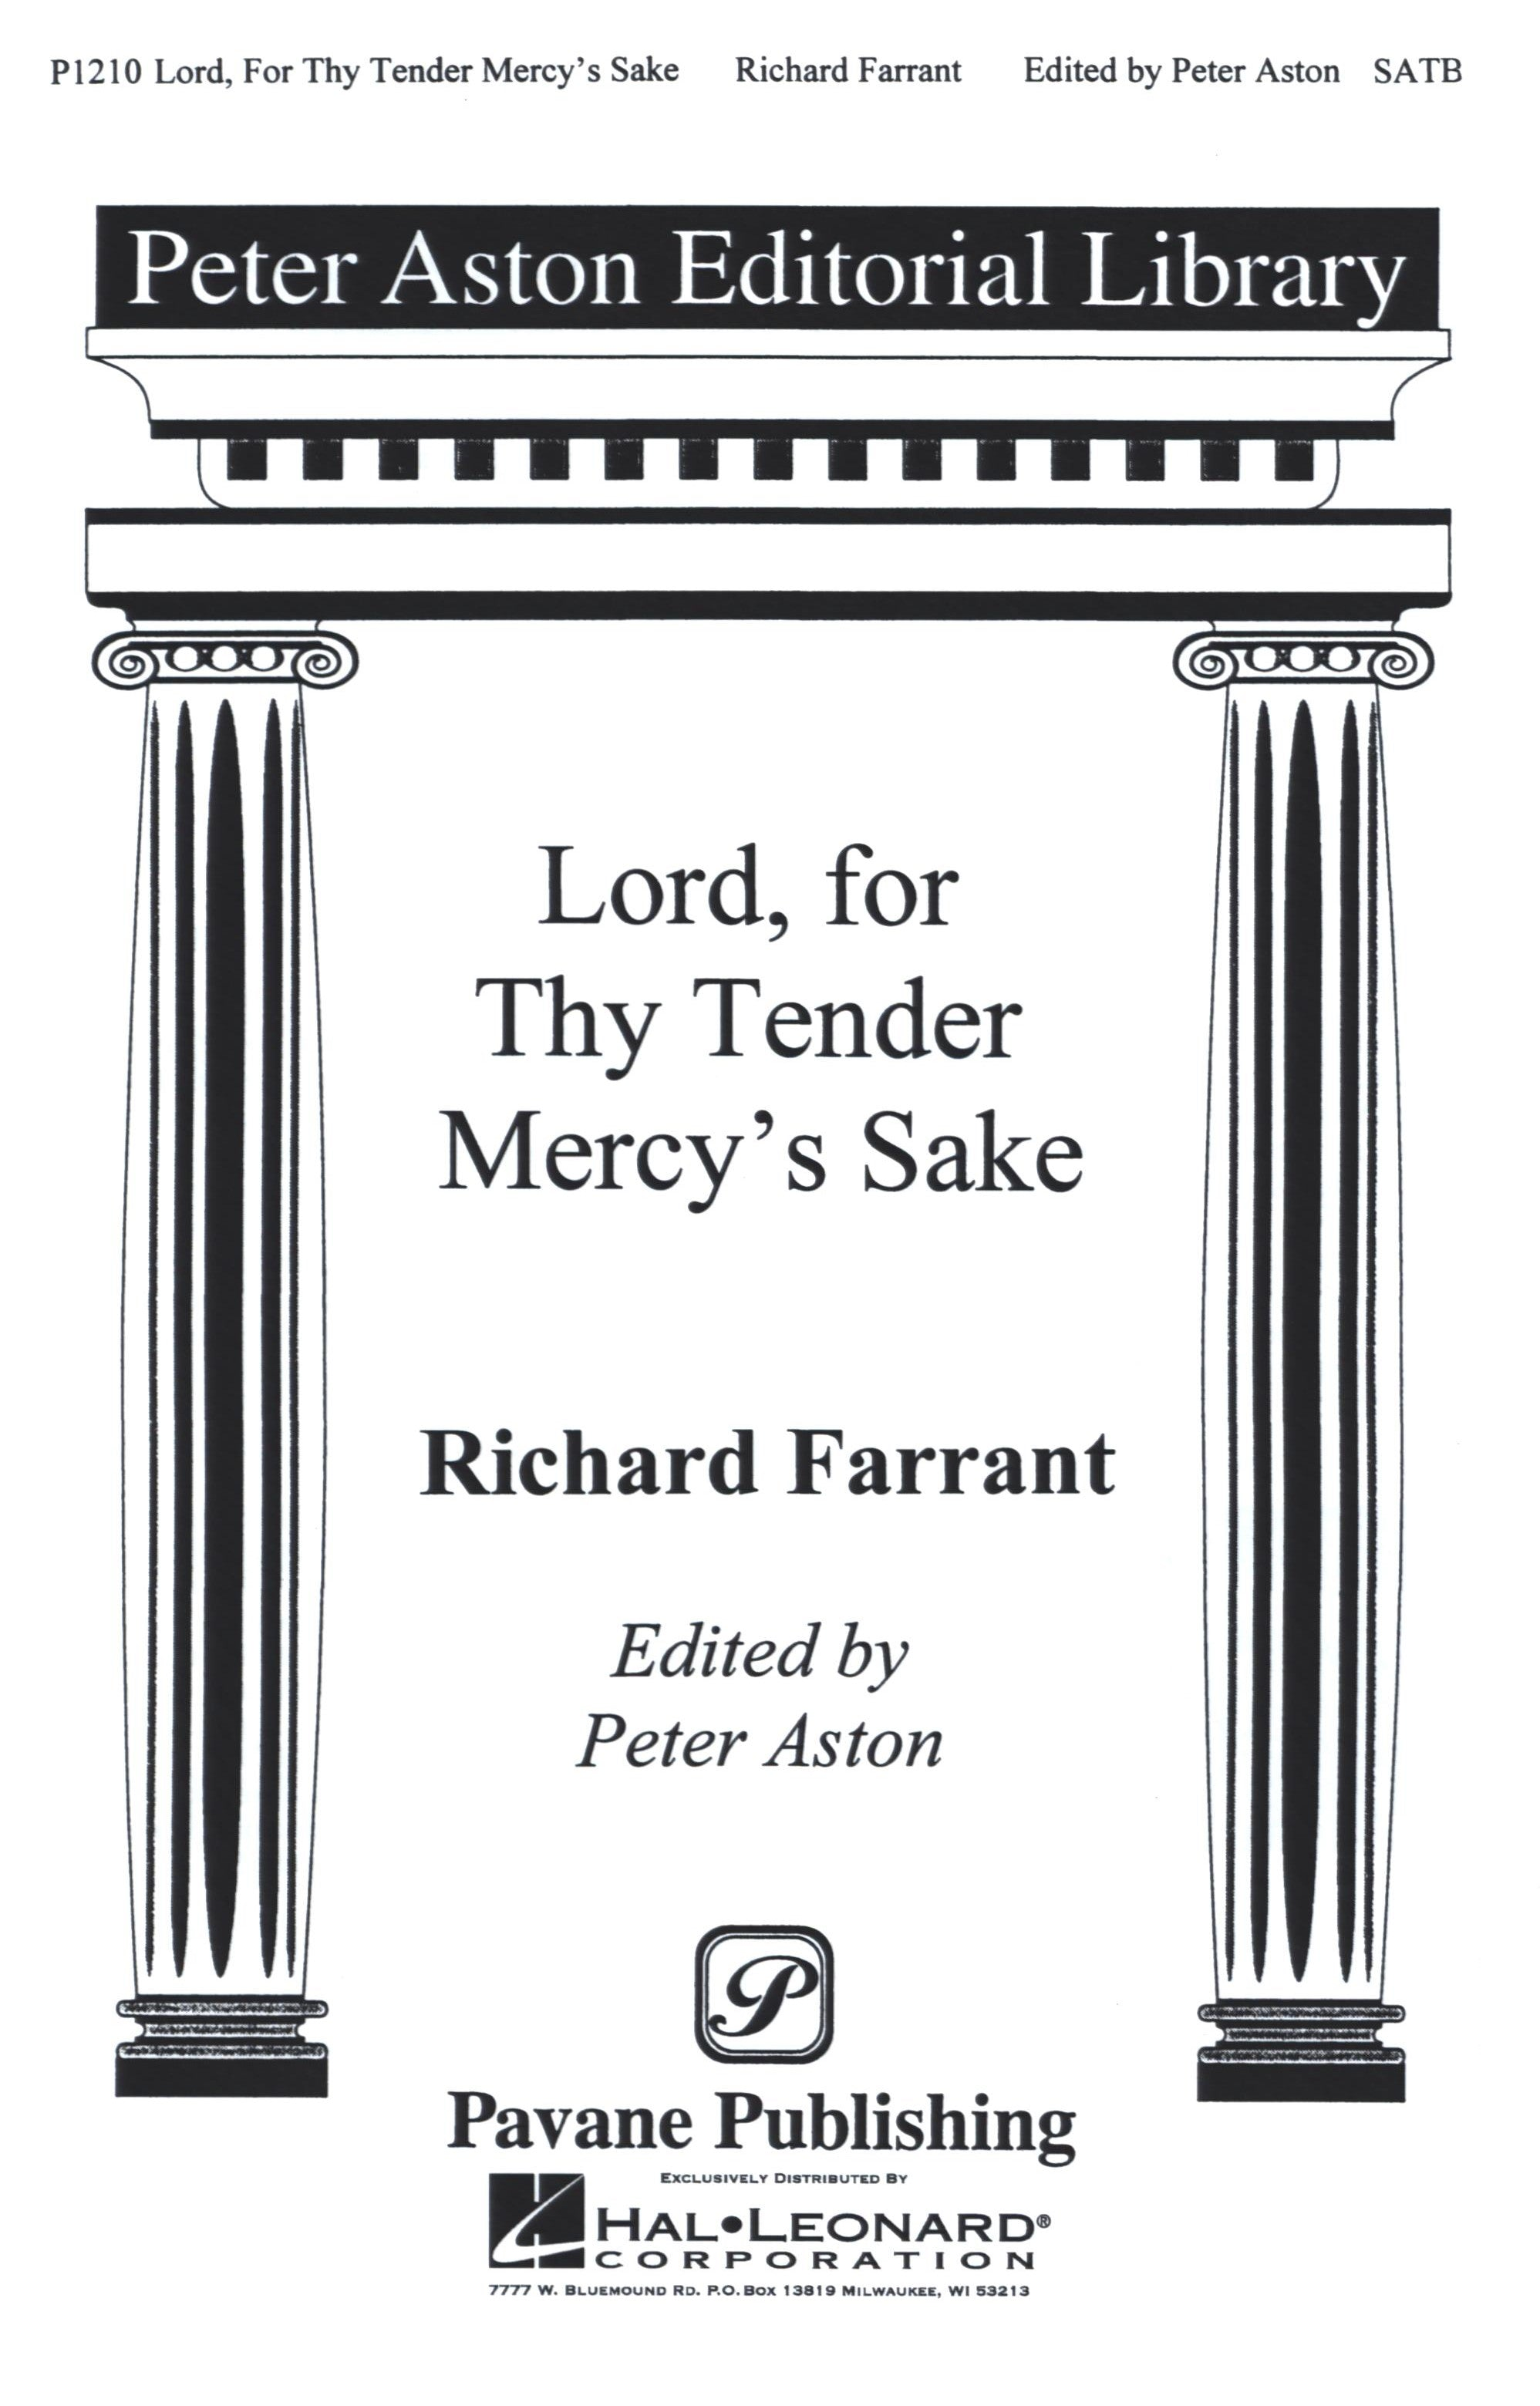 Farrant: Lord, for Thy Tender Mercy's Sake